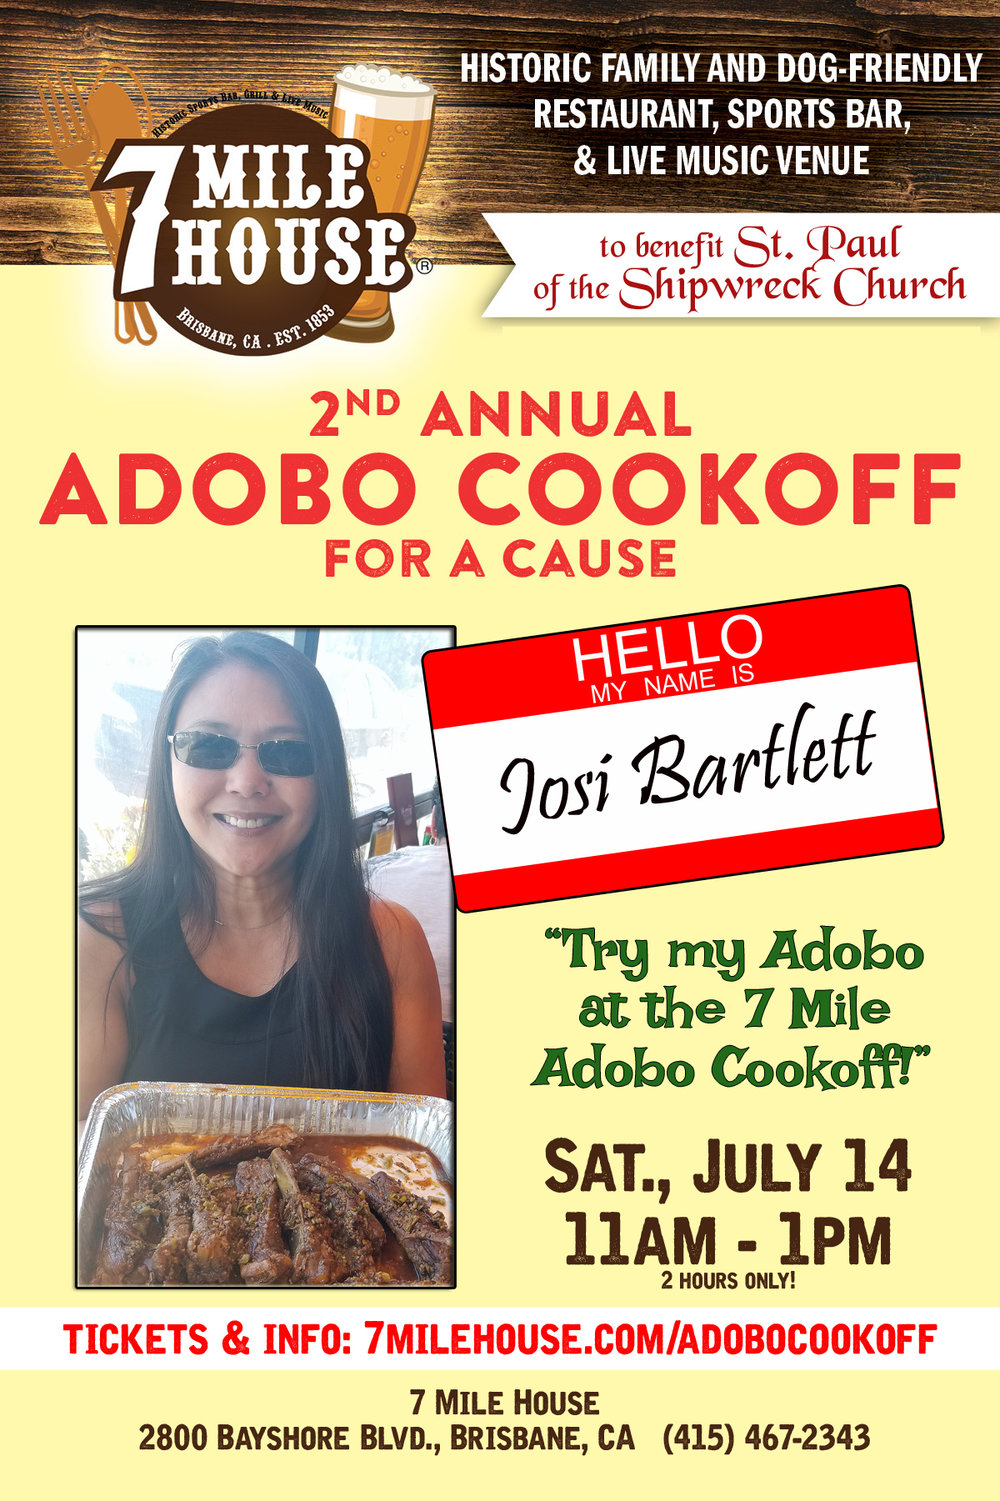 """1st place winner! - Josie Bartlett shares """"As a native San Franciscan, Adobo is my favorite Filipino comfort food. As a non-cook, my adobo is my One-Hit-Wonder. It's the only dish I take pleasure in making because I enjoying seeing the expressions of delight when people eat my adobo. Never expect leftovers. ENJOY!"""